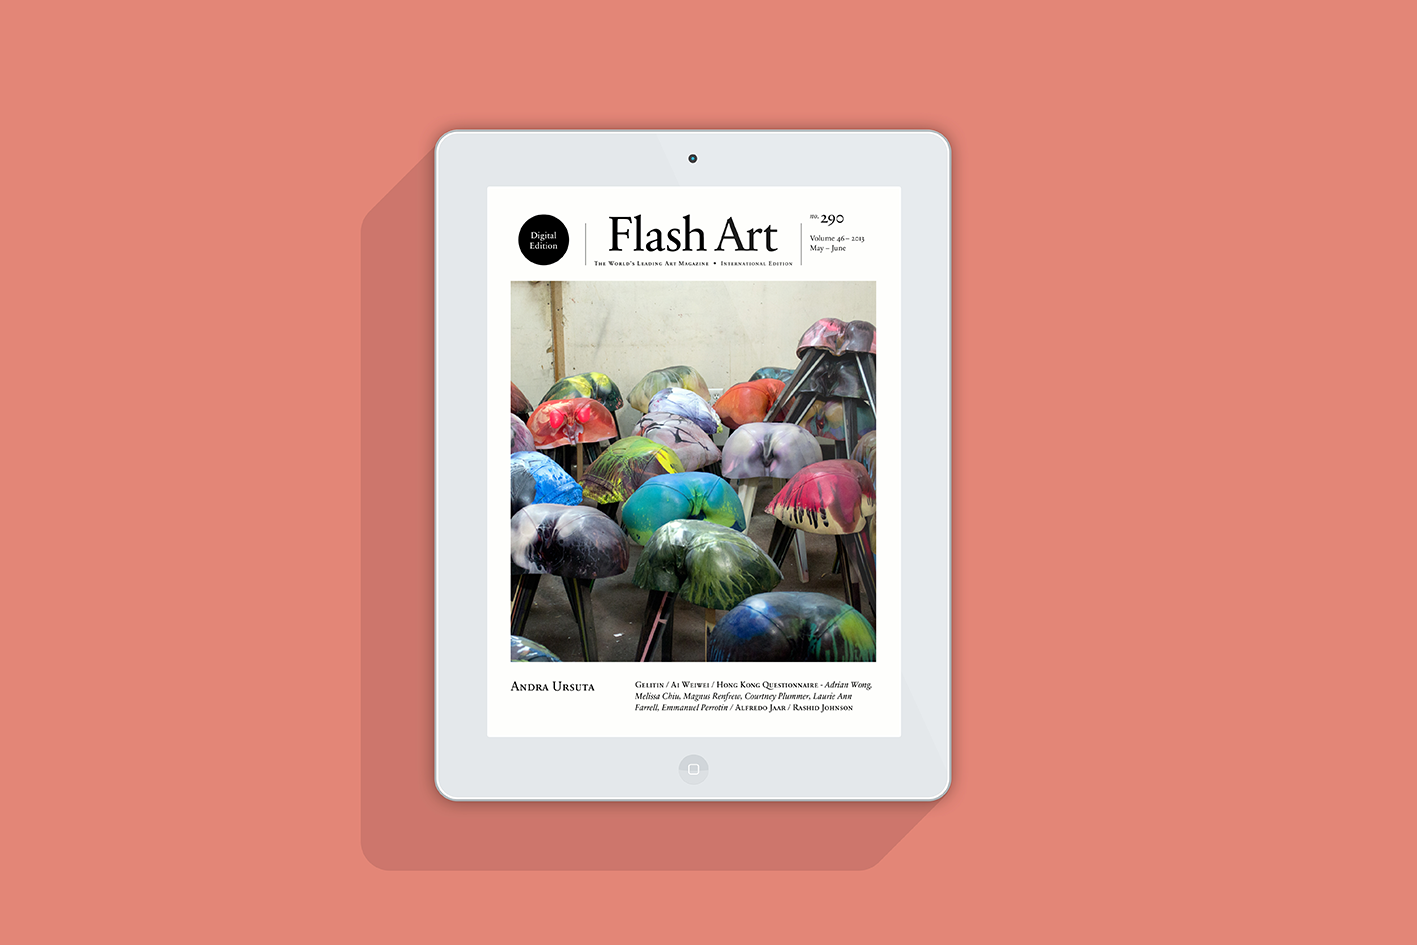 Flash Art International - Digital edition